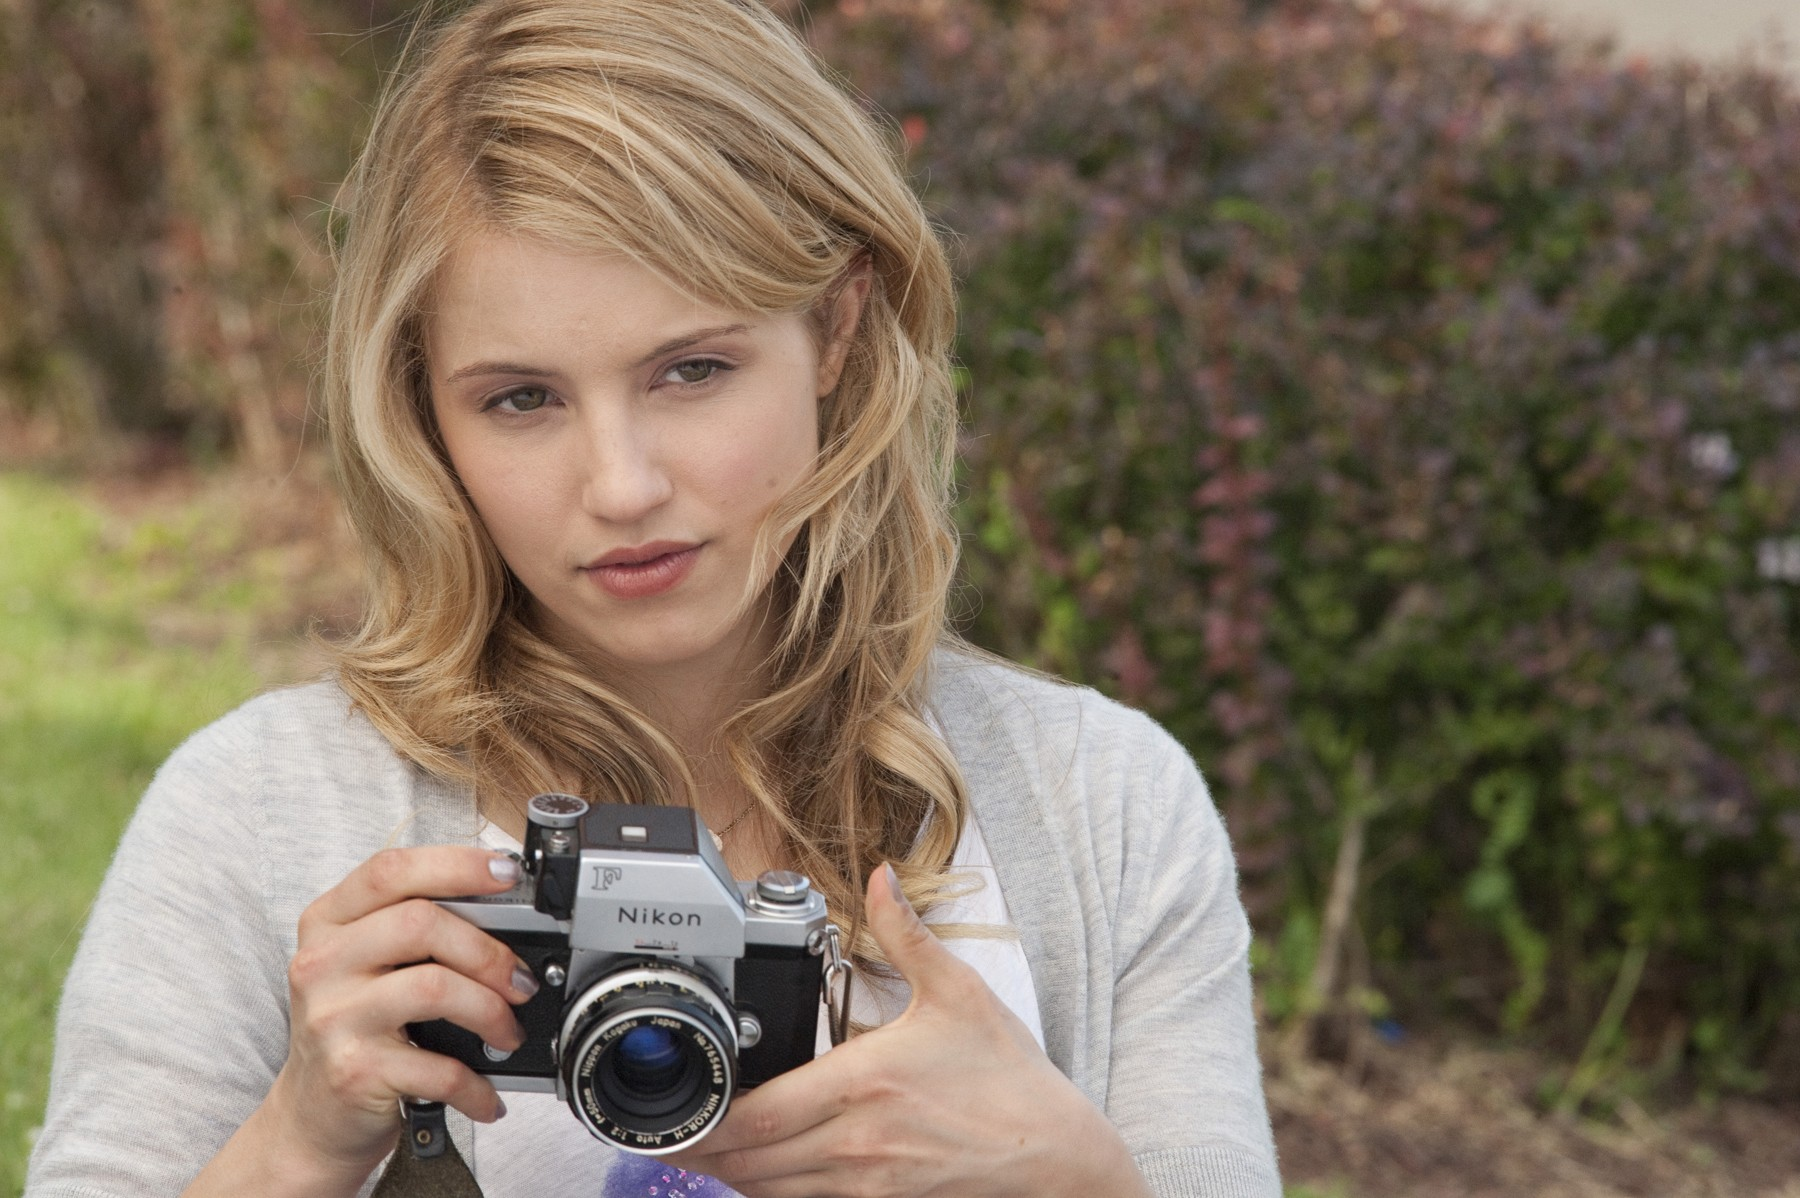 Dianna Agron in I Am Number Four